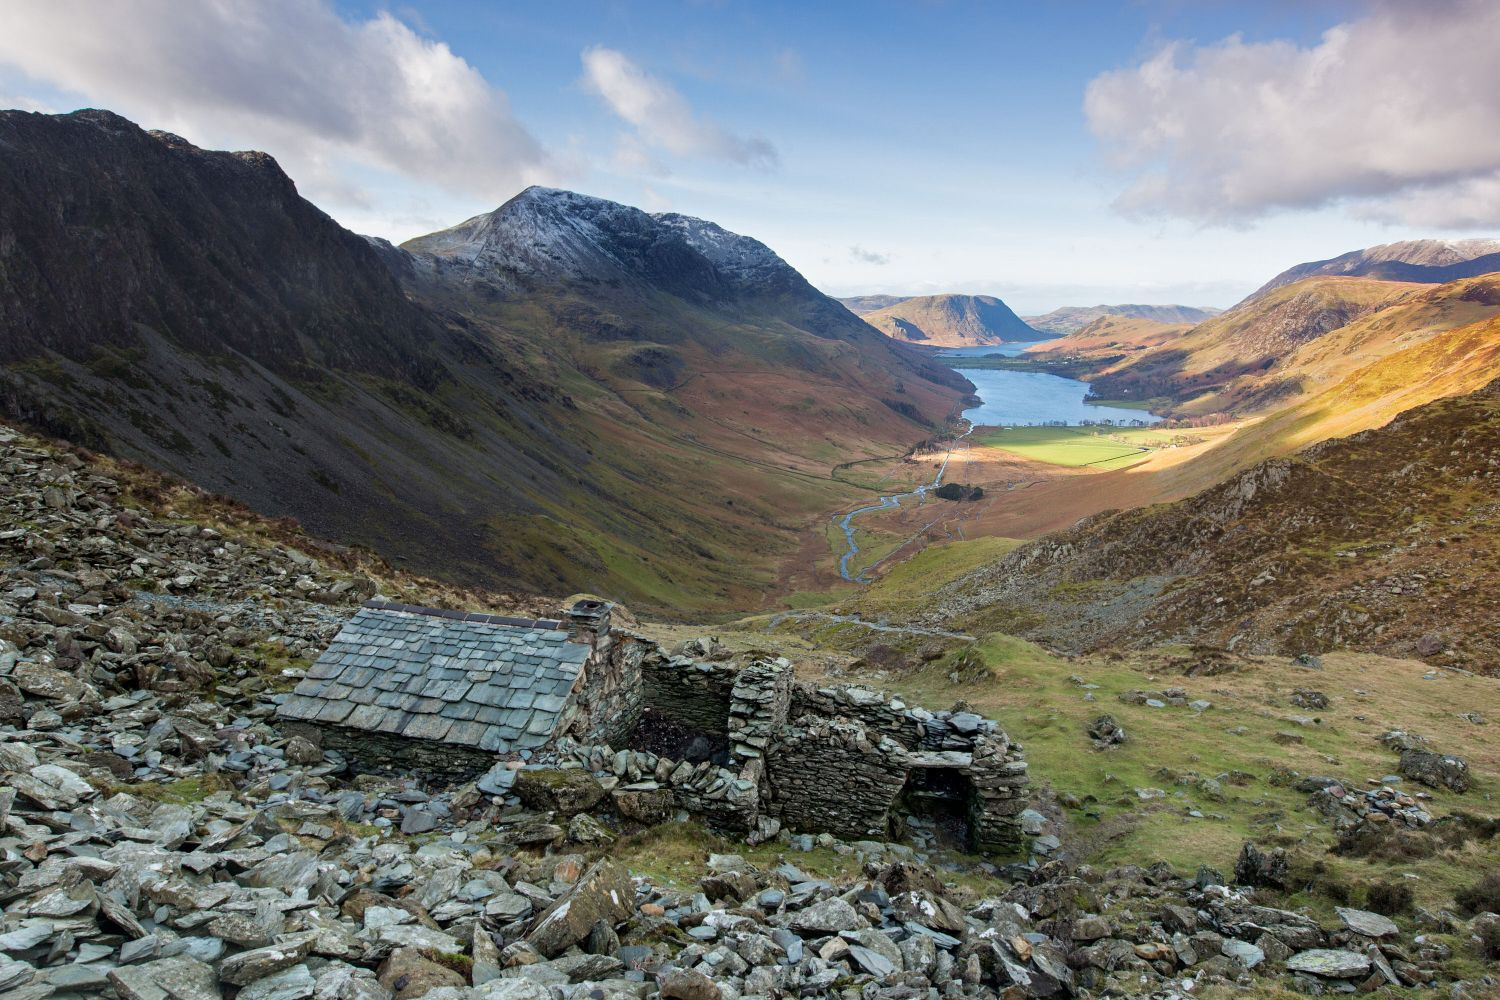 A view to die for from Warnscale Bothy